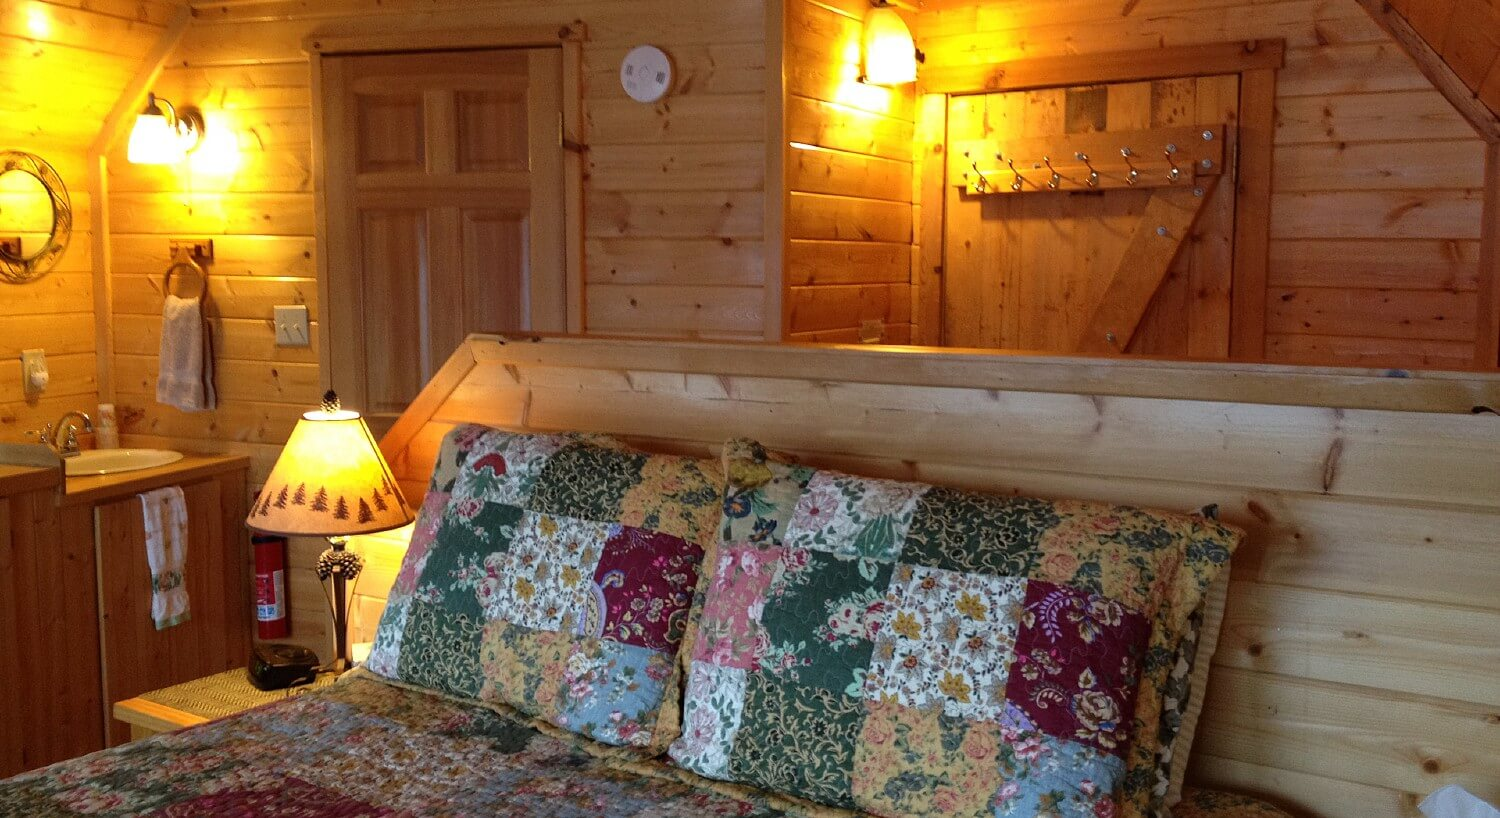 Queen bed in a flowered quilt with a wood headboard in a cozy cabin